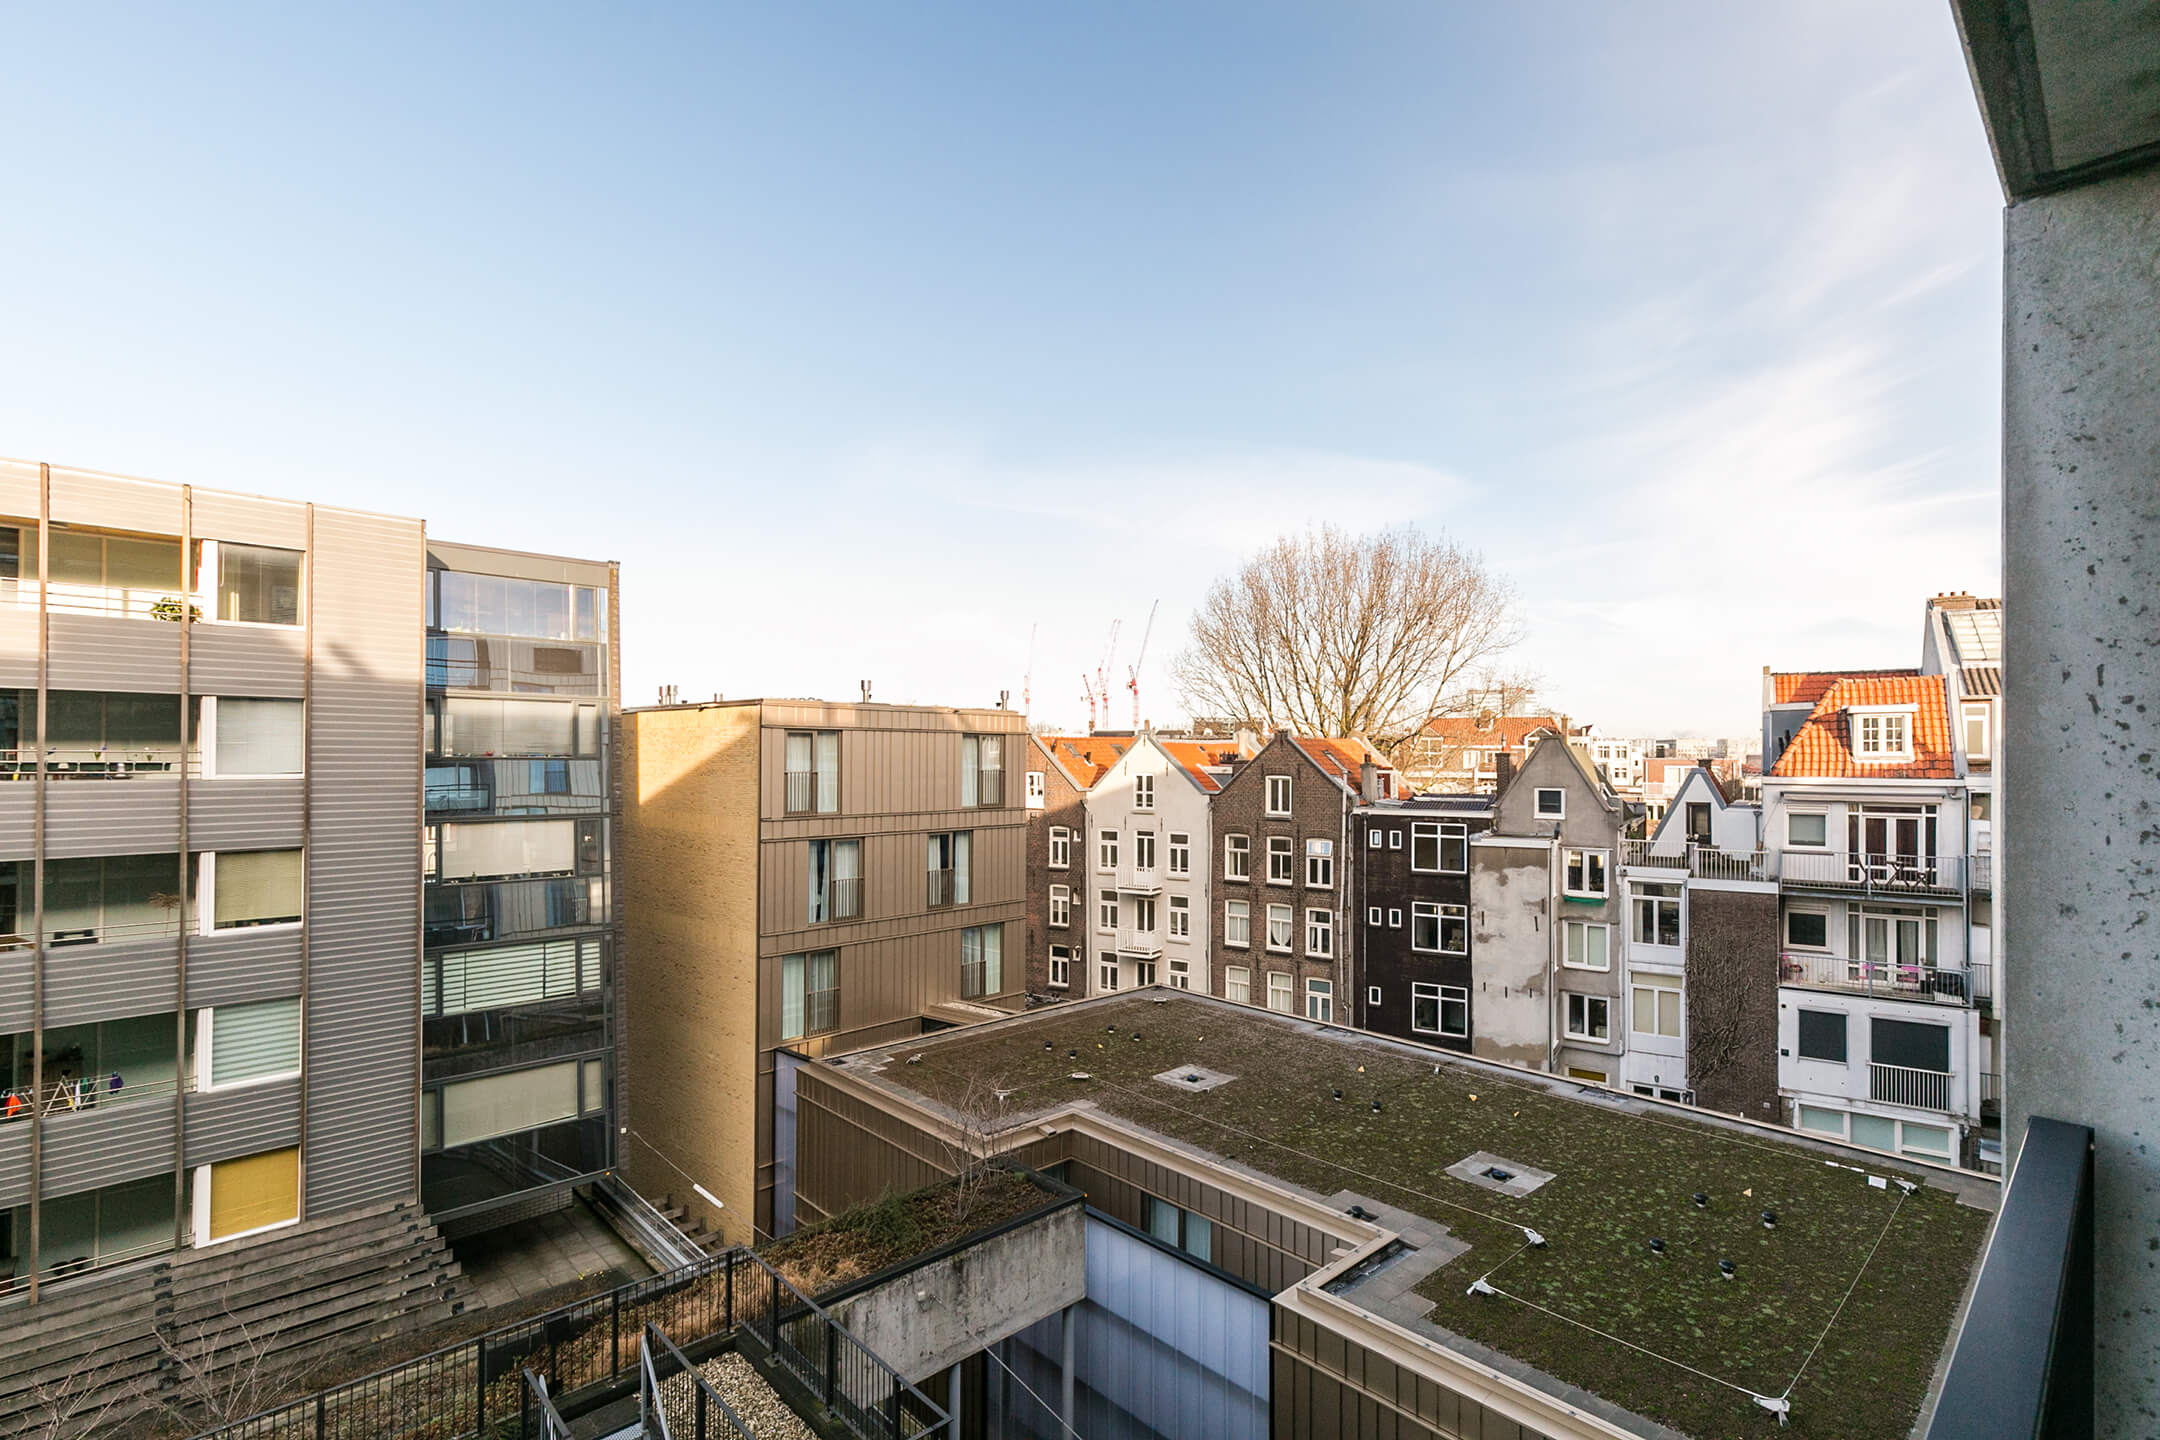 Valkenburgerstraat 22 E1011 LZ, Amsterdam, 2 Bedrooms Bedrooms, ,1 BathroomBathrooms,Appartement,Te koop,de Valkenburgh,Valkenburgerstraat,4,1032